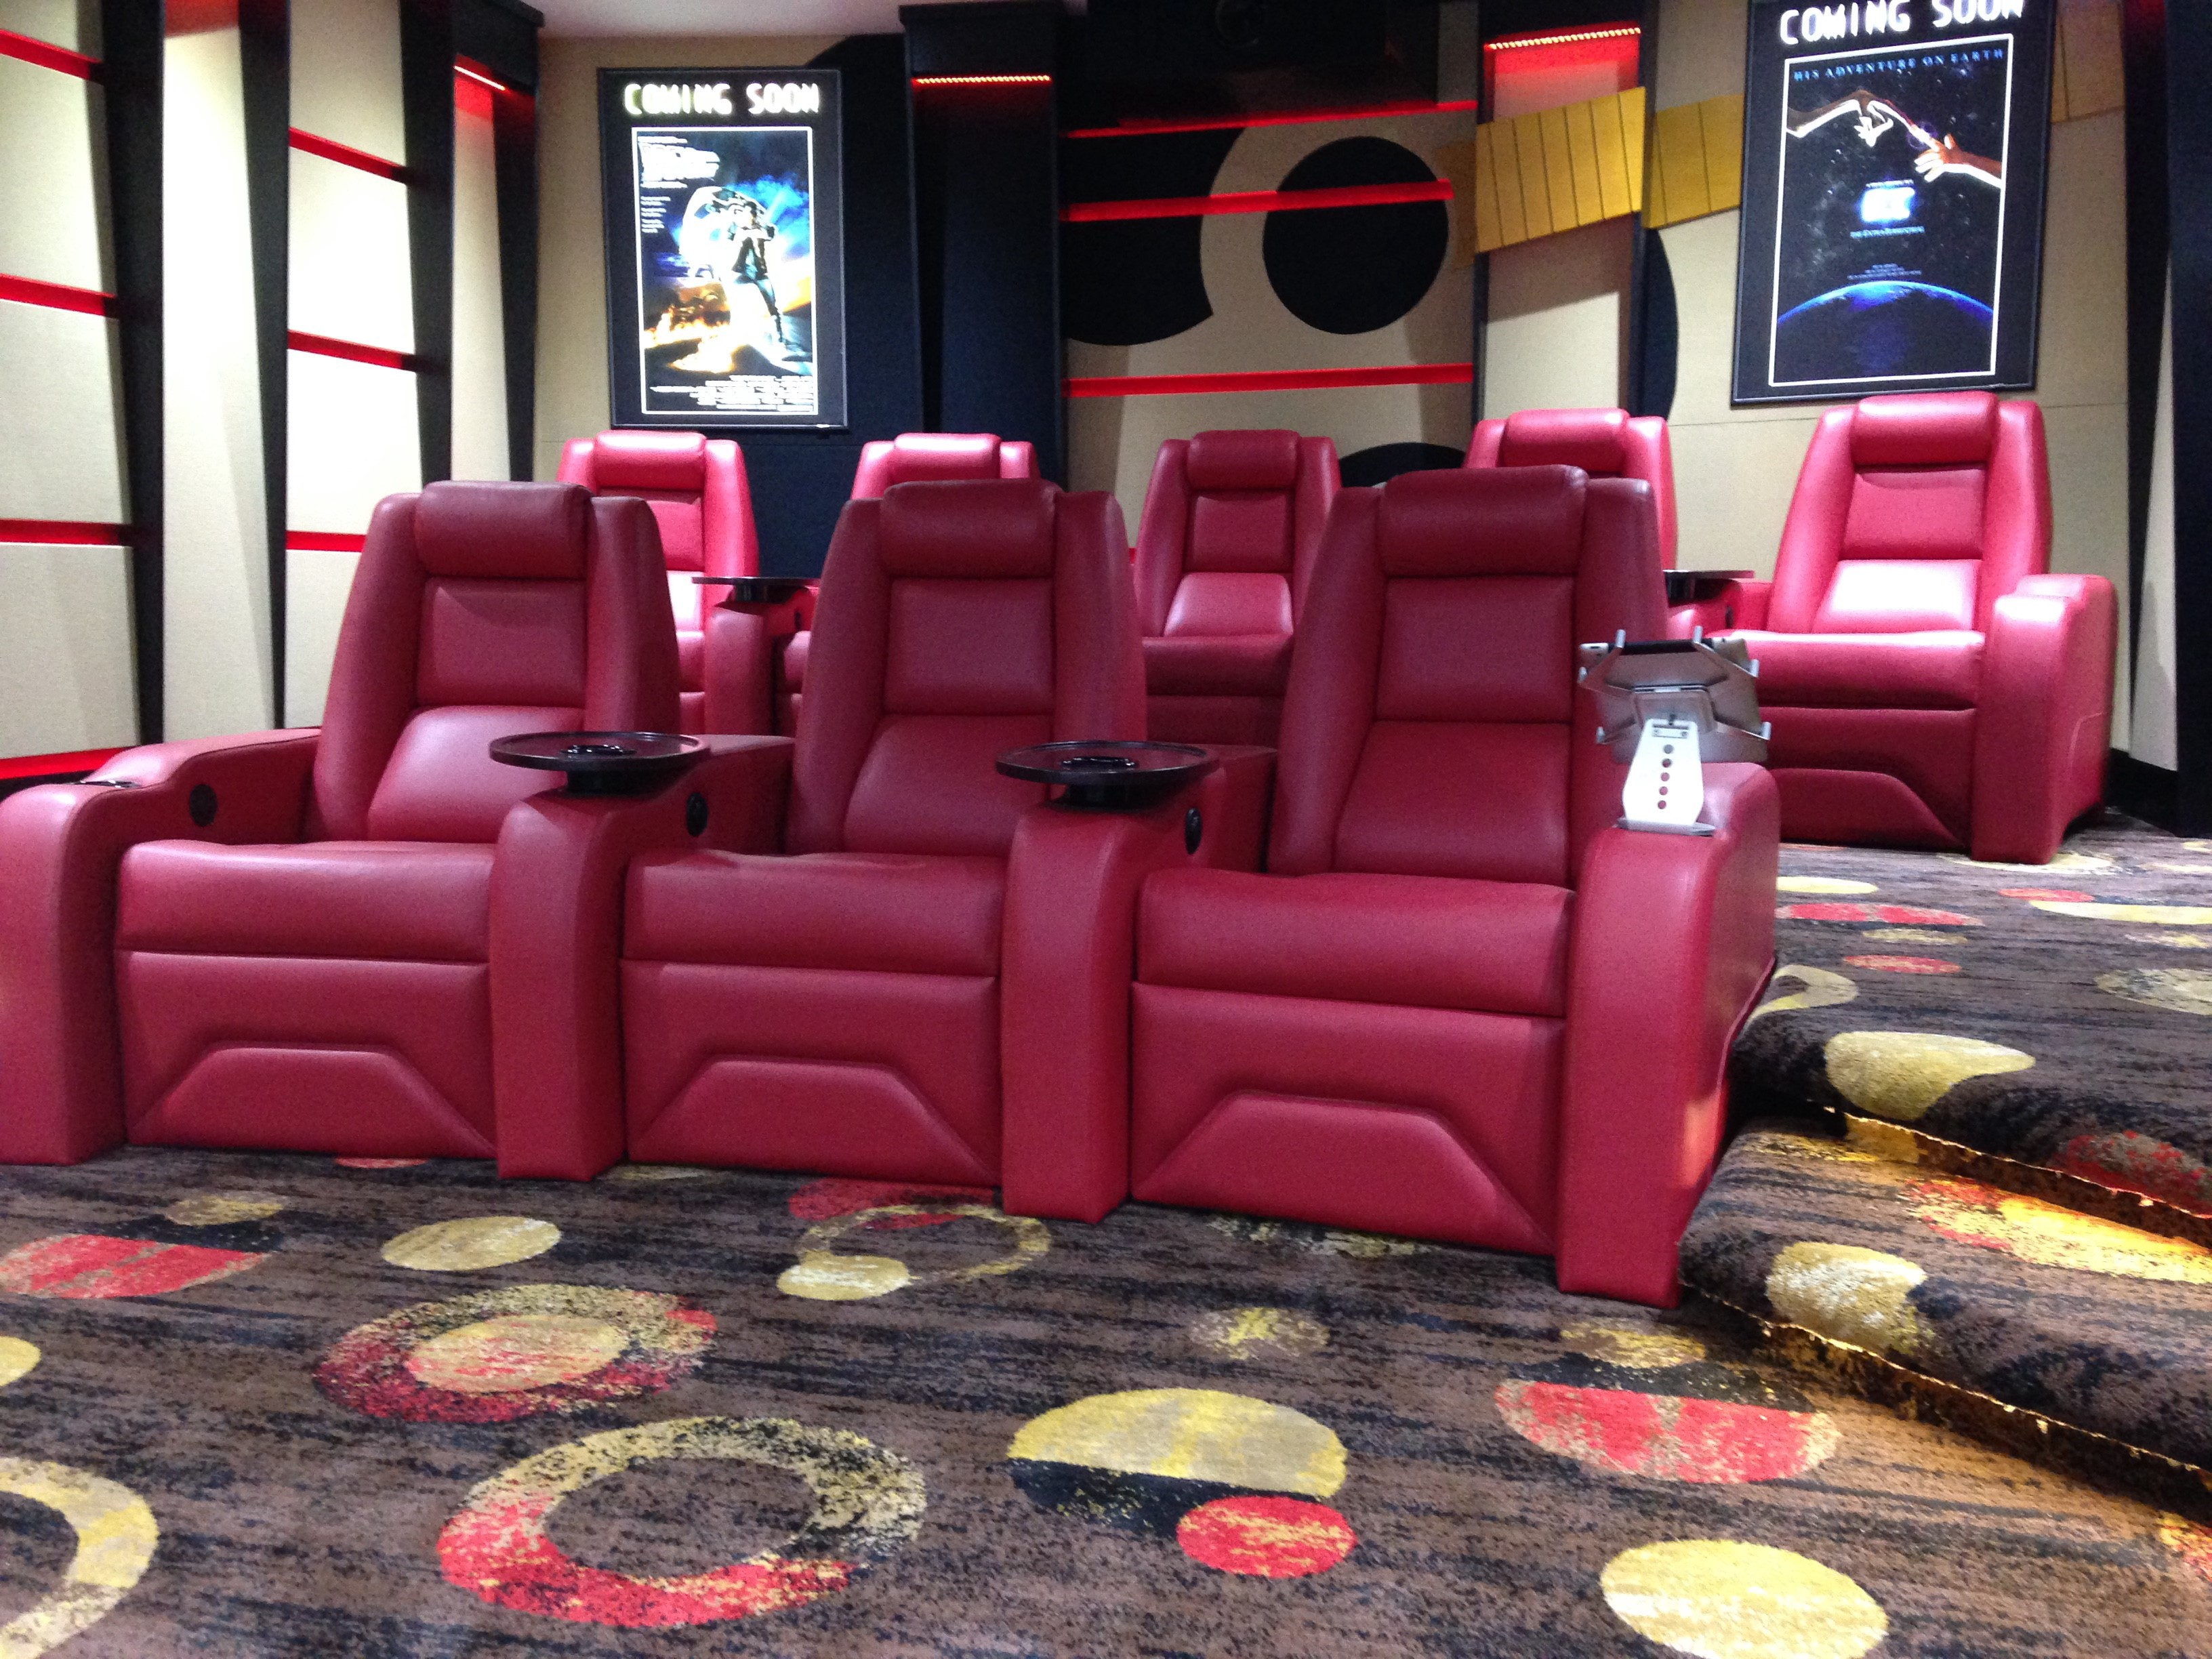 Home Cinema Seating Elitehts Com Has The Best Collection Of By Elite Home Theater Seating Medium